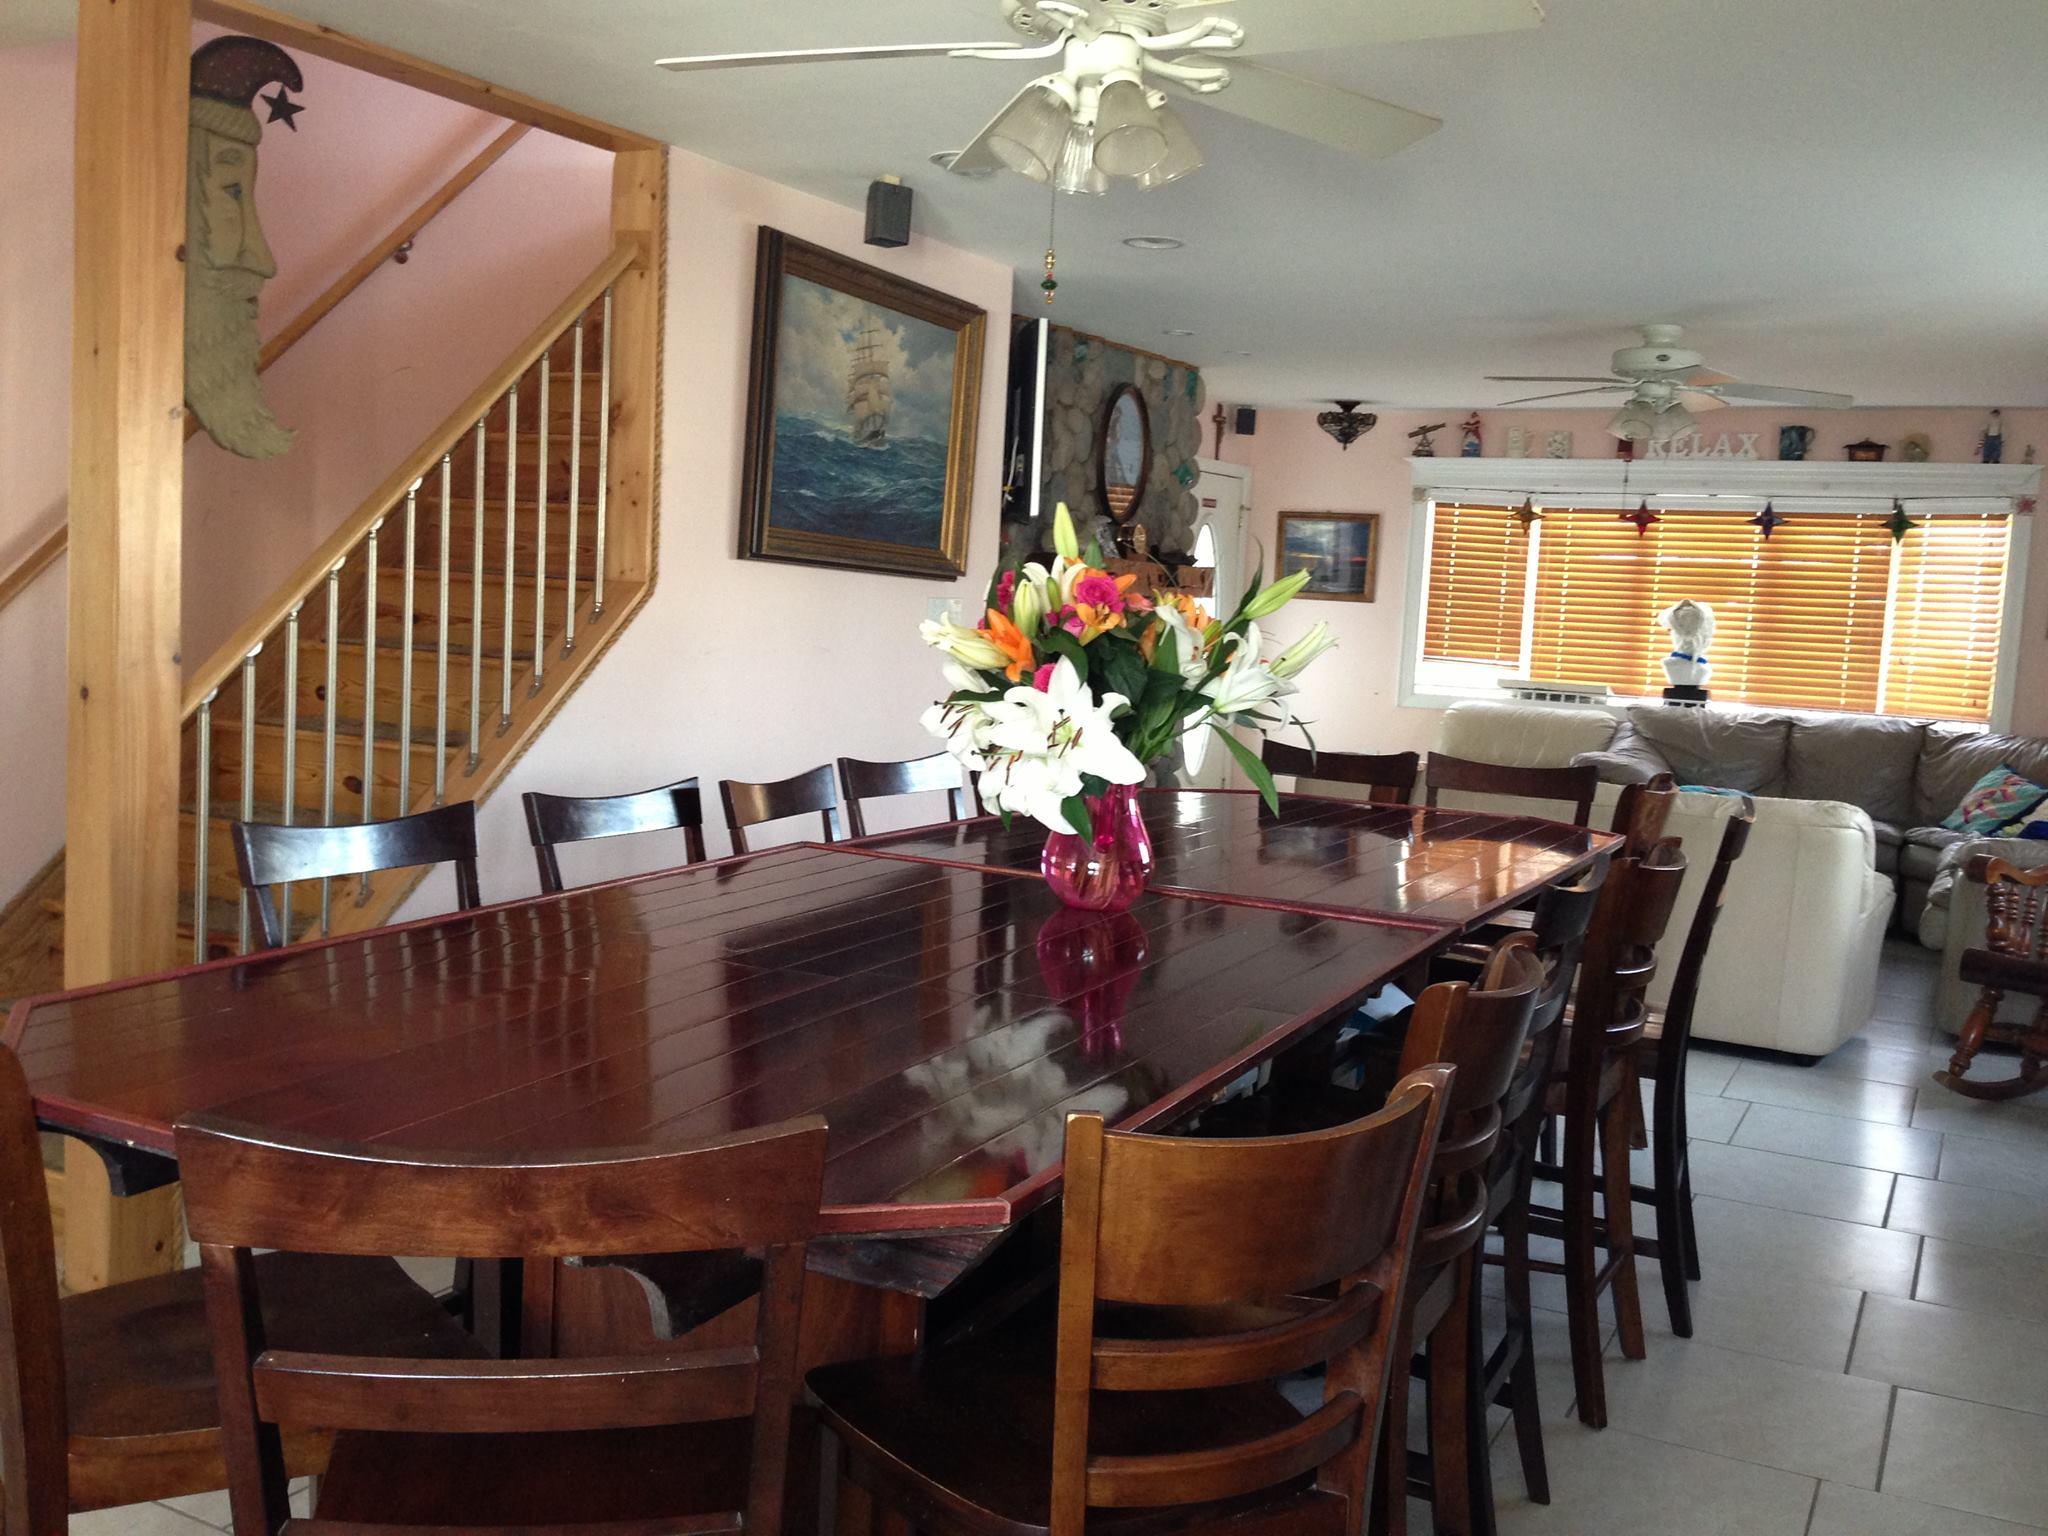 Long Beach Island in New Jersey the best Wedding Place in New Jersey - New Jersey Hotels and New Jersey Beach Front PropertyFirst Floor Living Room with 42 inch TV and surround sound